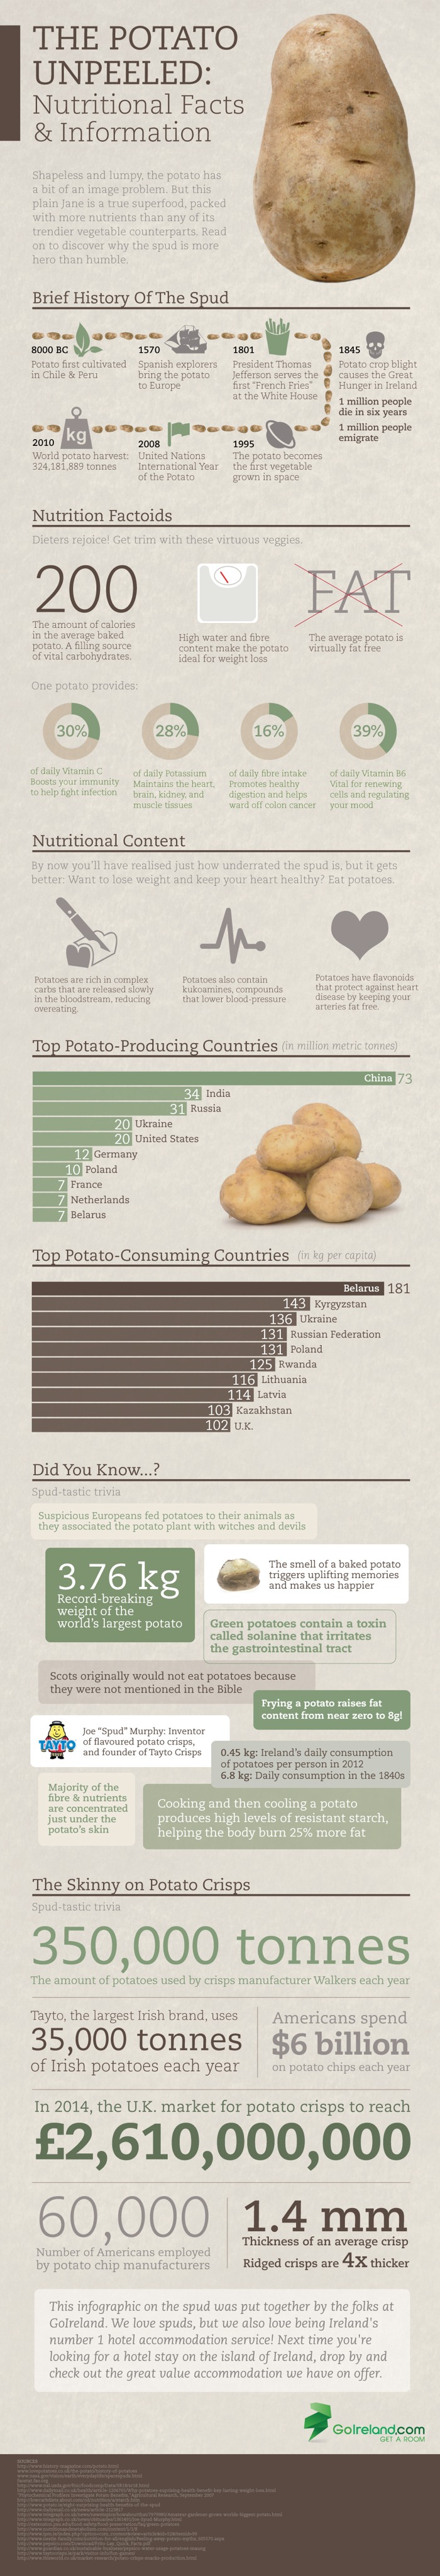 Potato: Nutritional Facts & Information